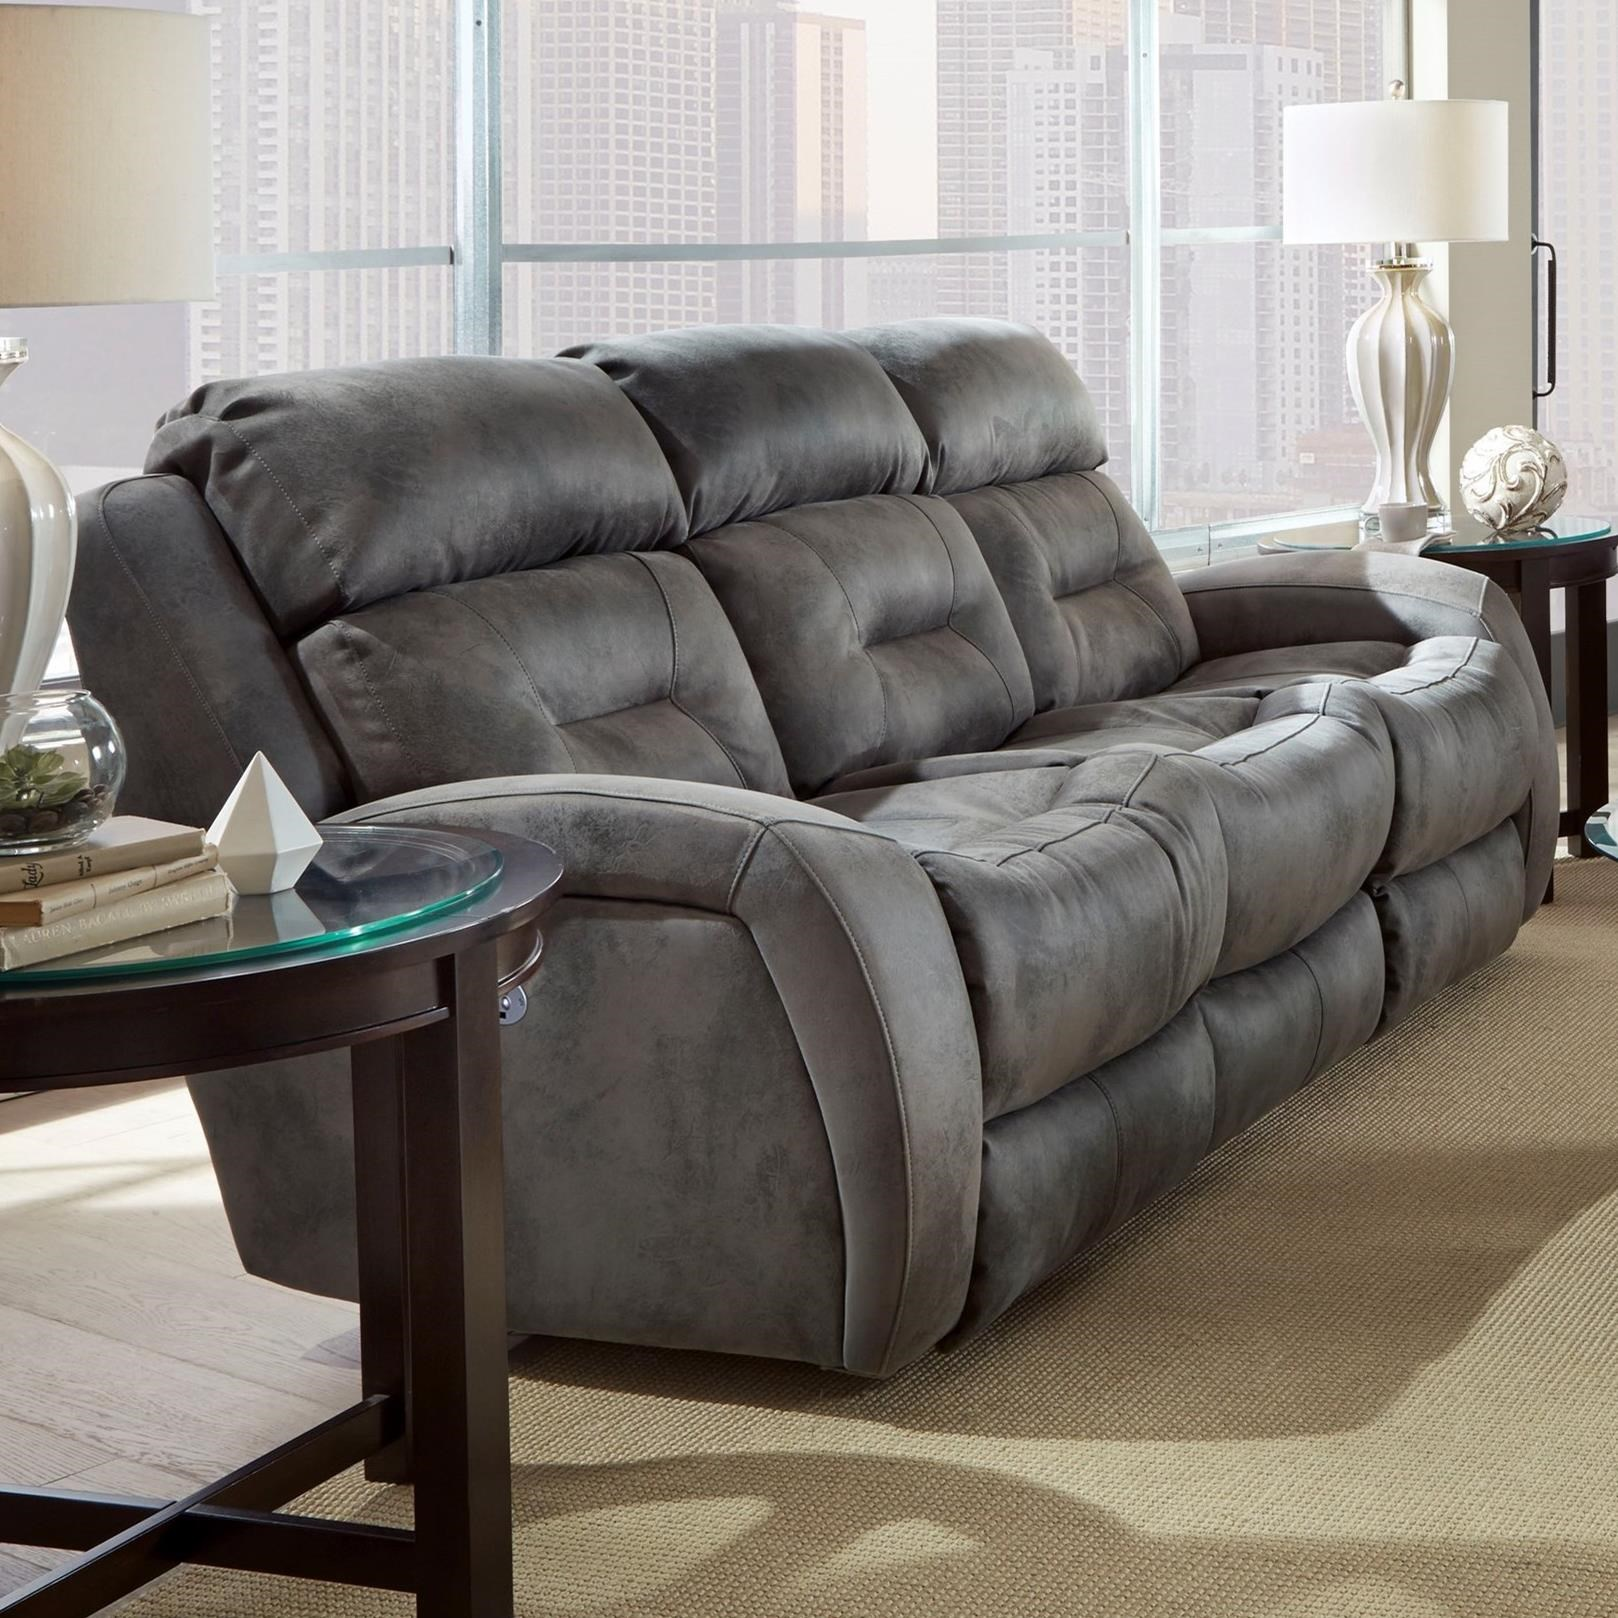 Double Reclining Sofa With Power Headrest And Drop Down Table By